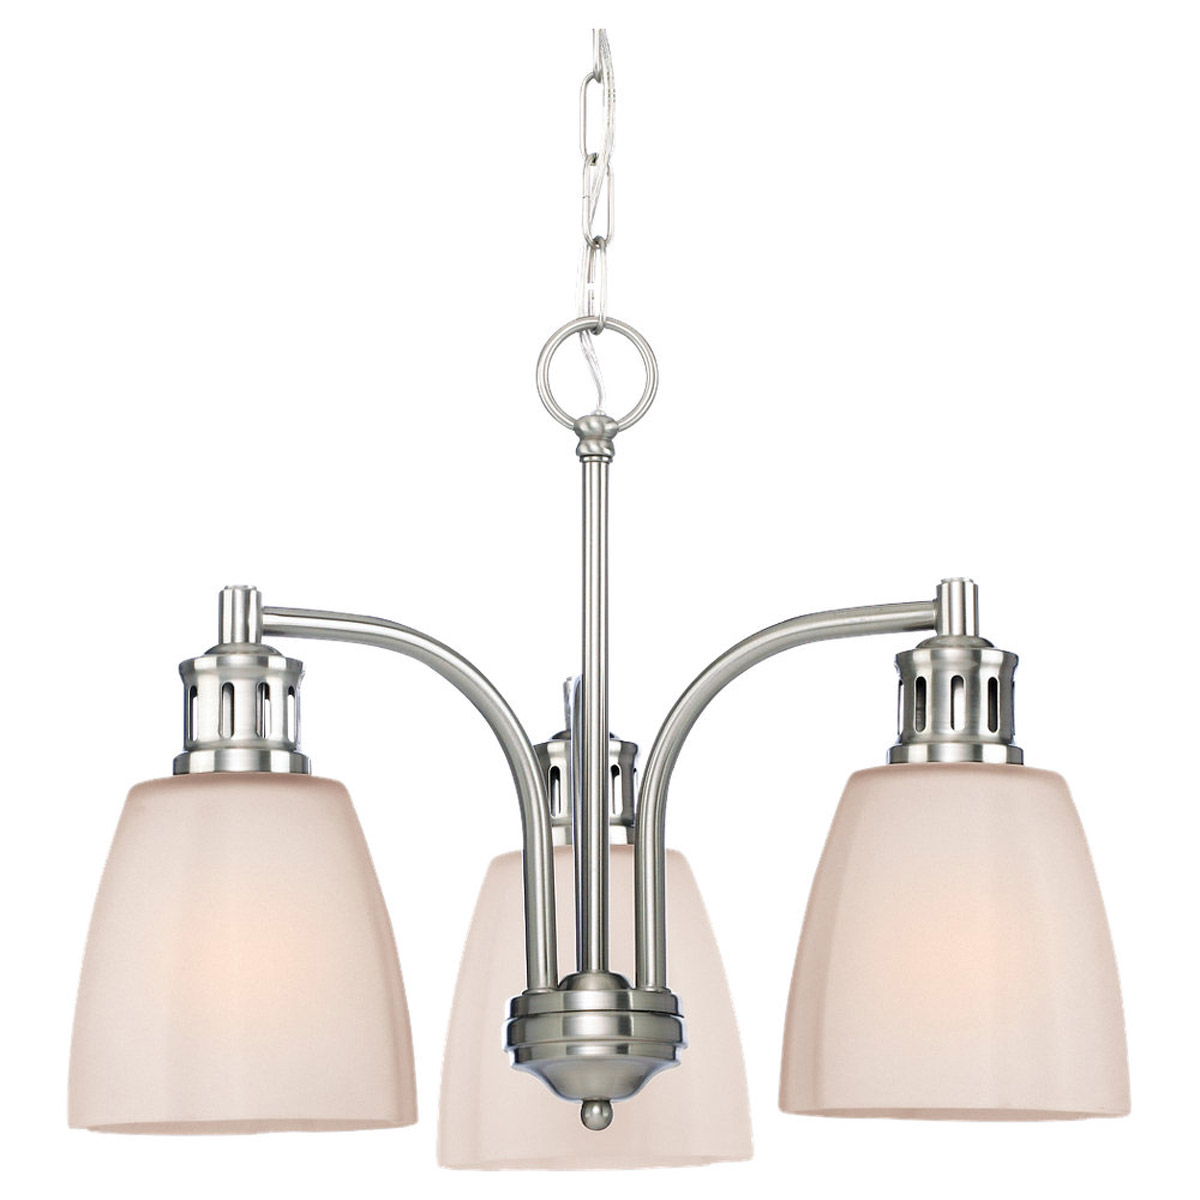 Sea Gull Lighting Century 3 Light Chandelier in Brushed Nickel 31474-962 photo